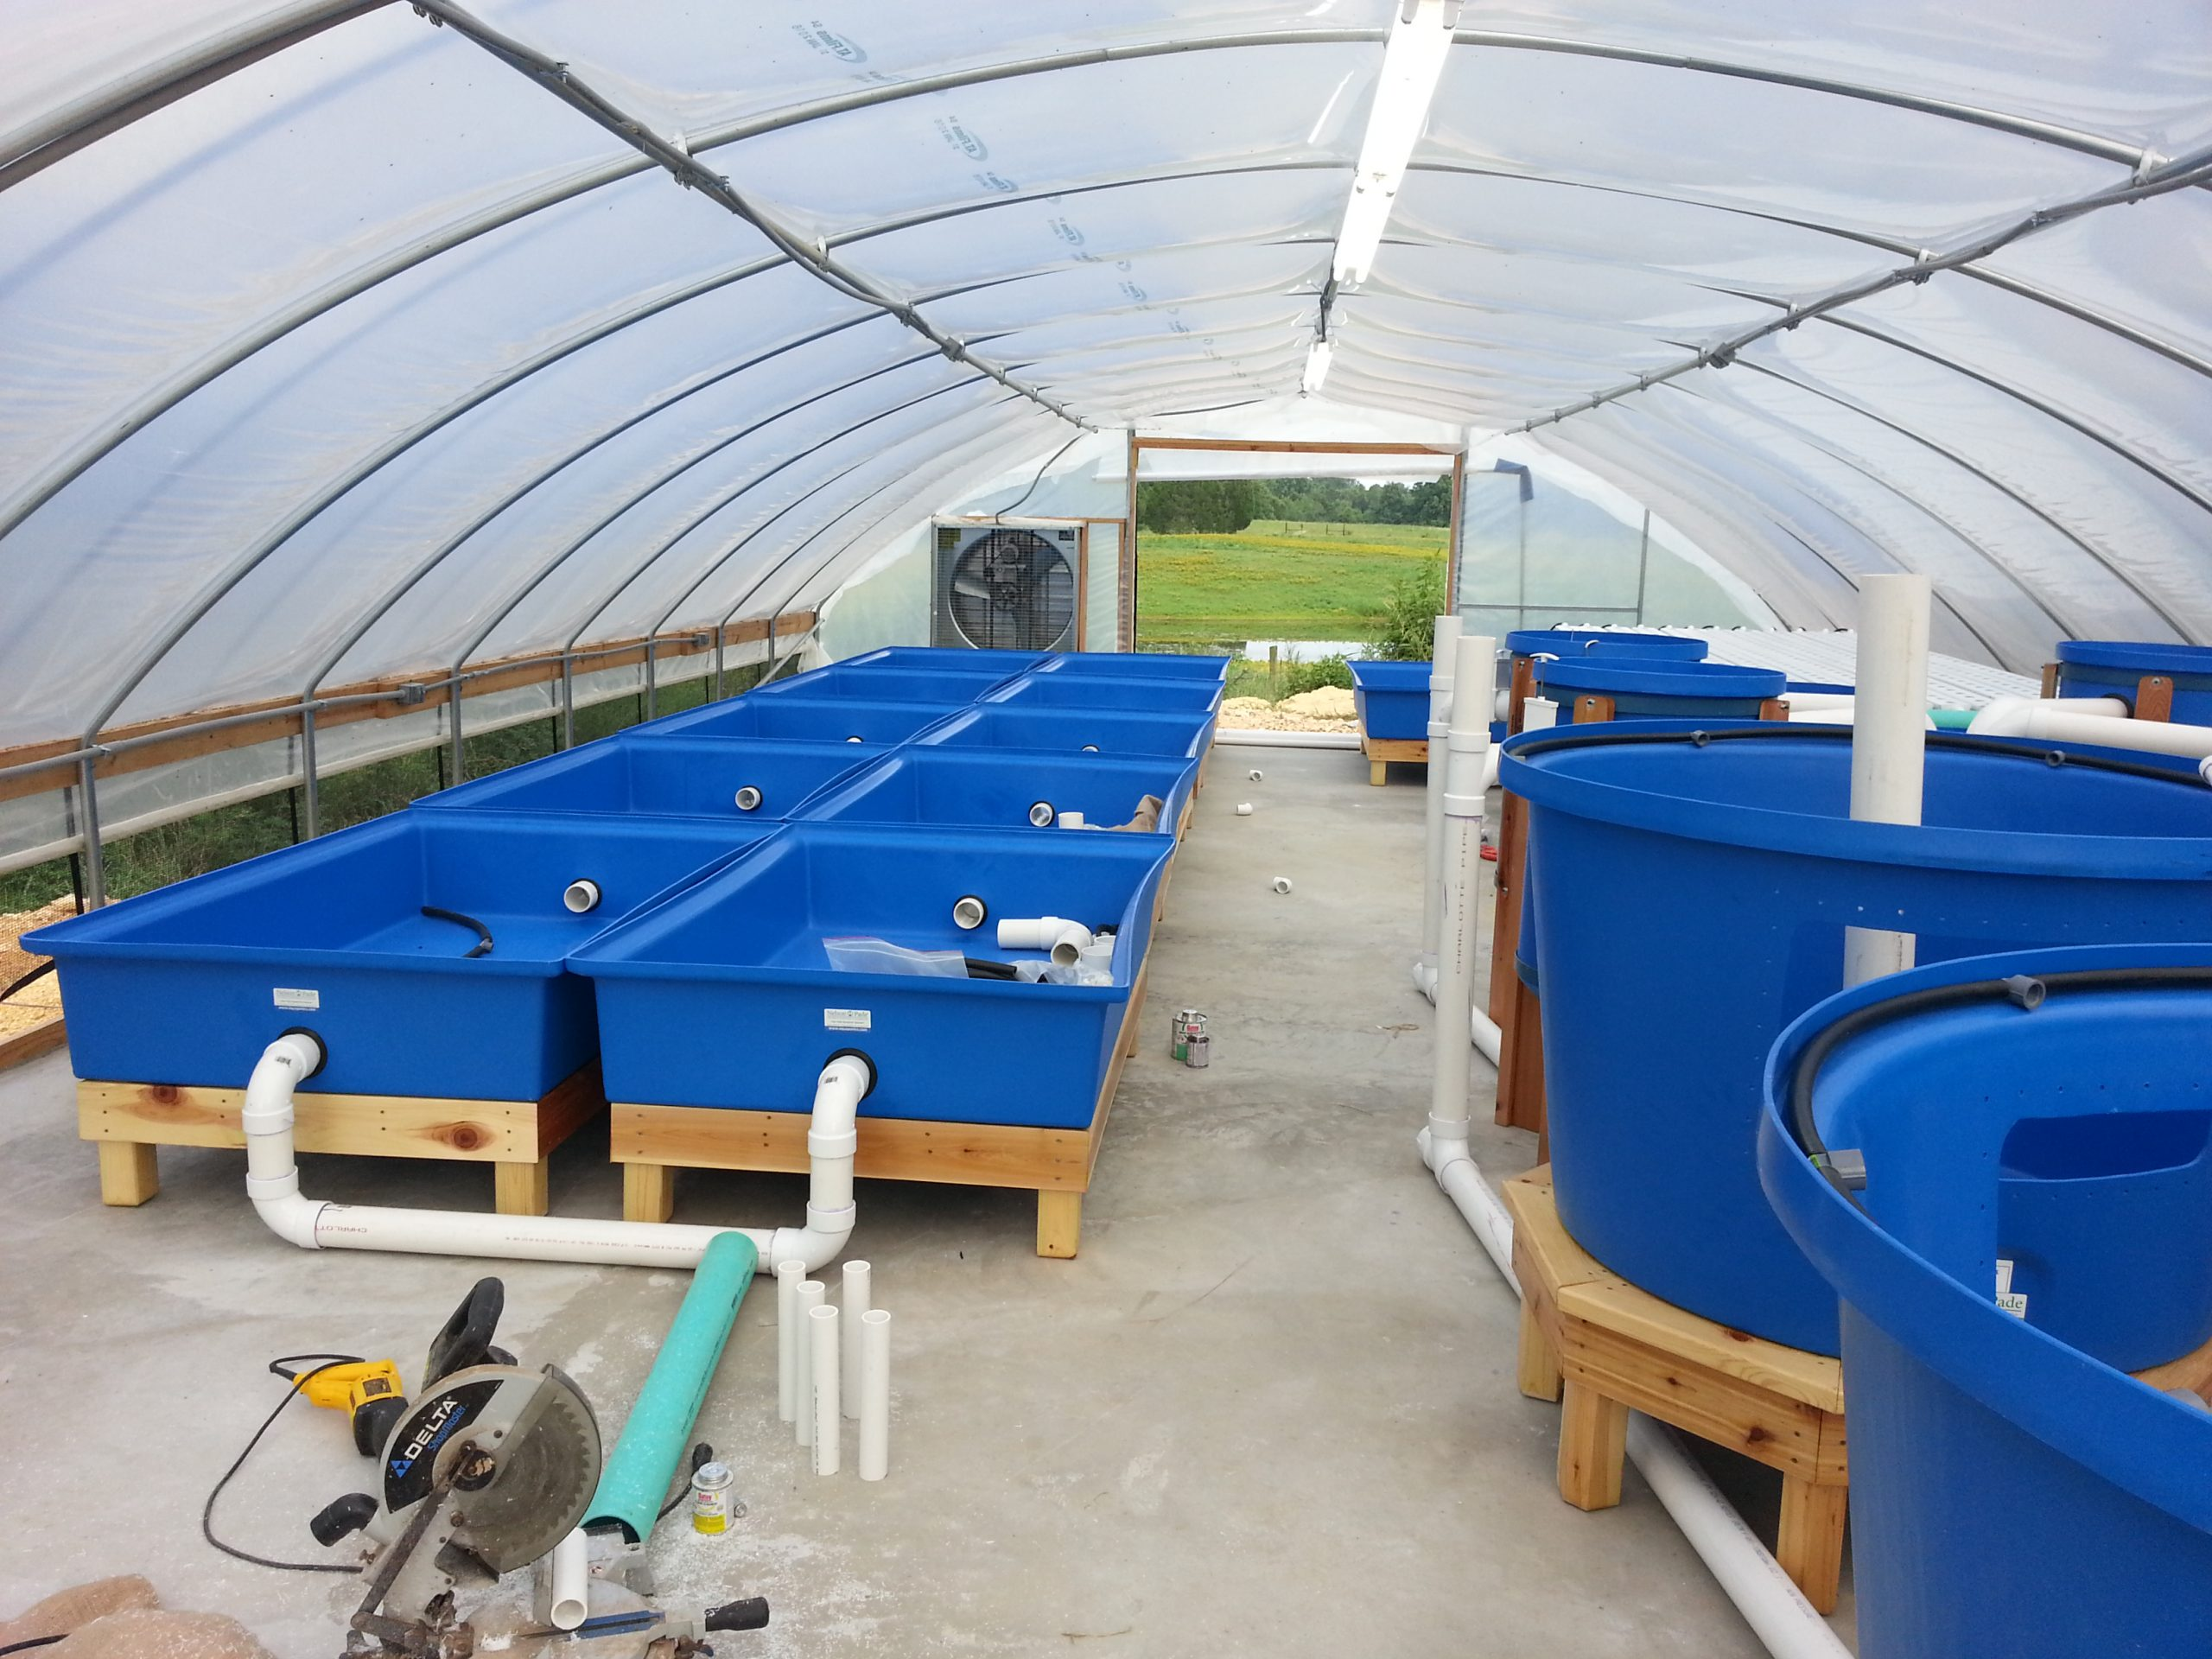 Indoor Growers World - Aquaponics - Controlled Environment Agriculture